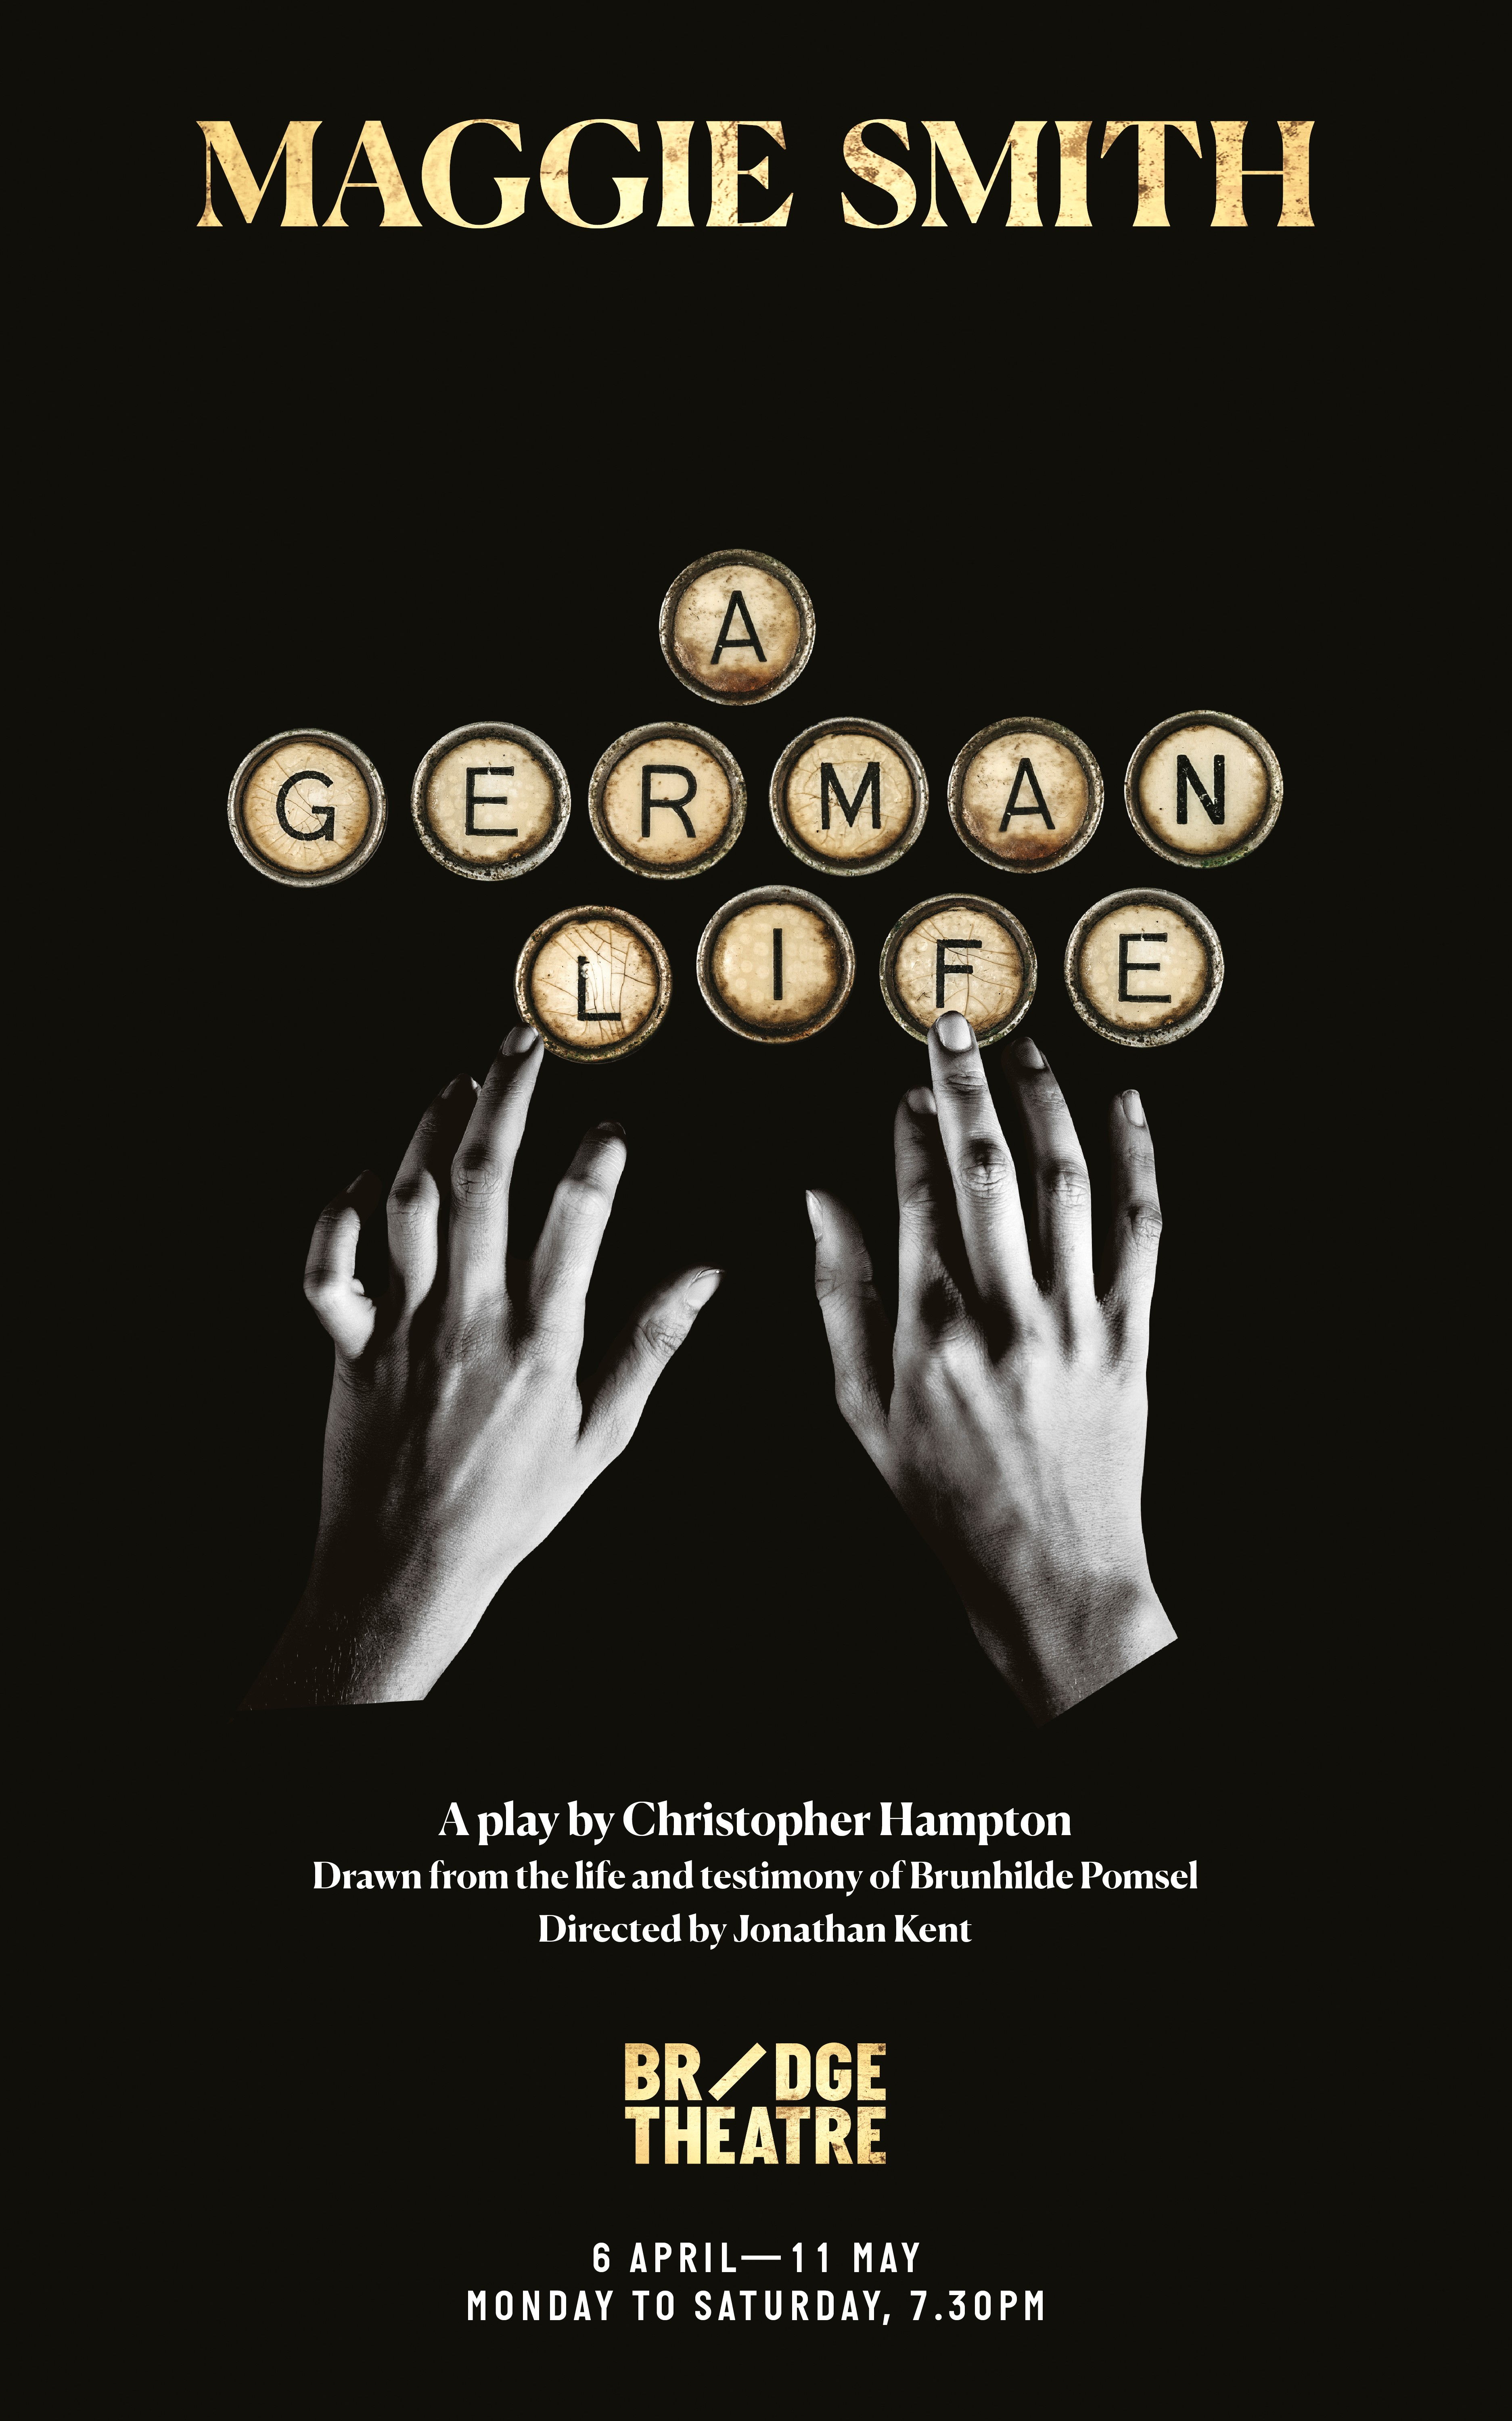 A German Life by Christopher Hampton